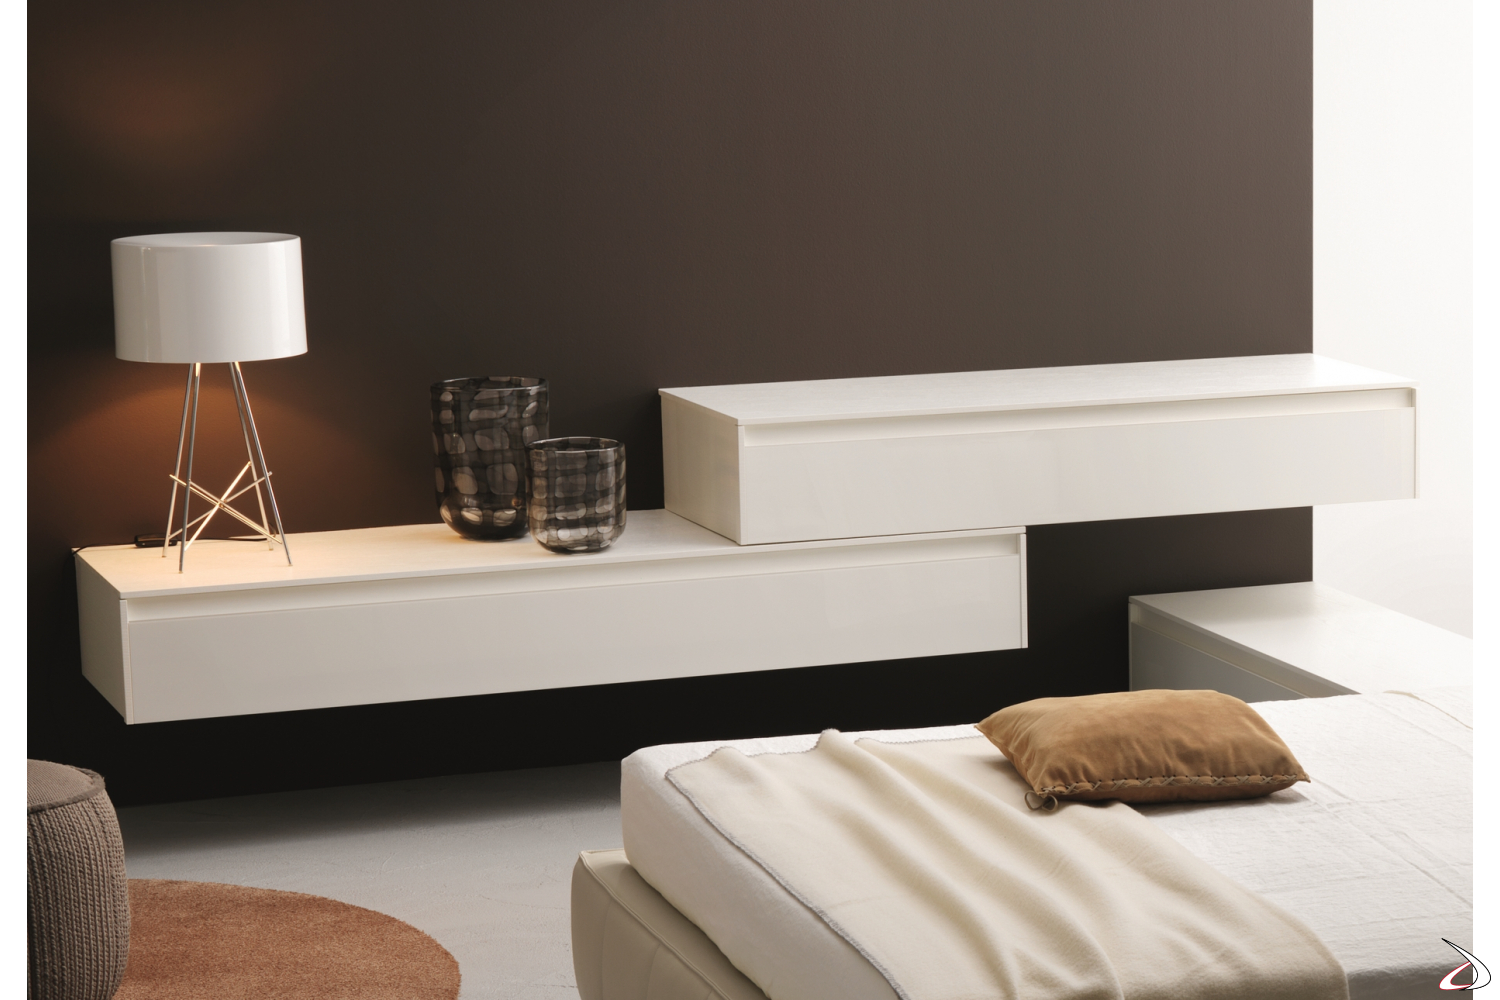 Modern chest of drawers for the bedroom